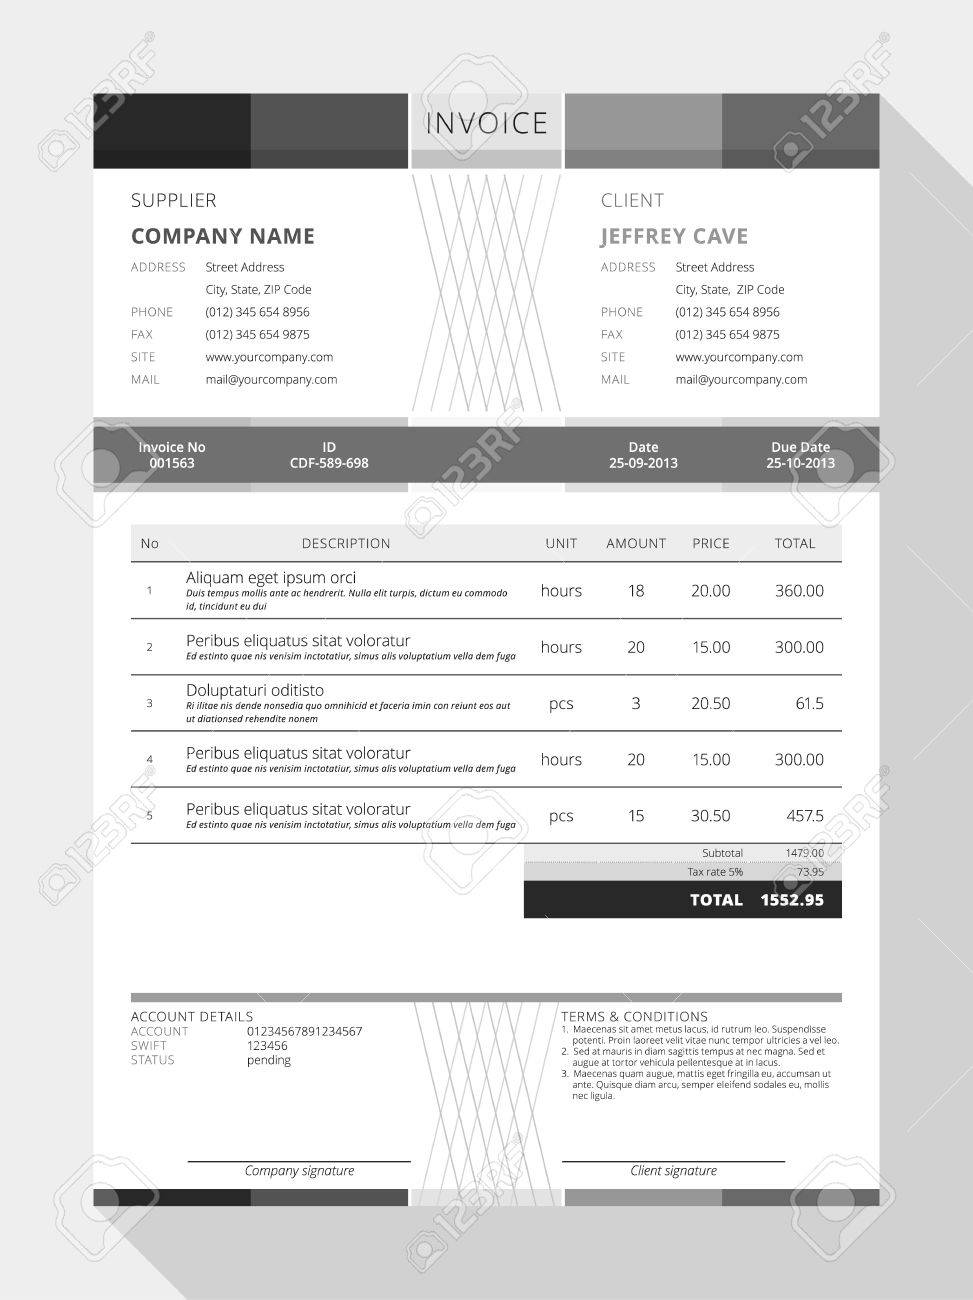 Occupyhistoryus  Fascinating Design An Invoice  Professional Graphic Design Invoice  With Exciting Vector Customizable Invoice Form Template Design Vector   Design An Invoice With Awesome Quicken Invoice Software Also Invoice Word Doc In Addition Template Invoice Excel And Sample Rent Invoice As Well As Cars Invoice Additionally Vw Gti Invoice From Happytomco With Occupyhistoryus  Exciting Design An Invoice  Professional Graphic Design Invoice  With Awesome Vector Customizable Invoice Form Template Design Vector   Design An Invoice And Fascinating Quicken Invoice Software Also Invoice Word Doc In Addition Template Invoice Excel From Happytomco